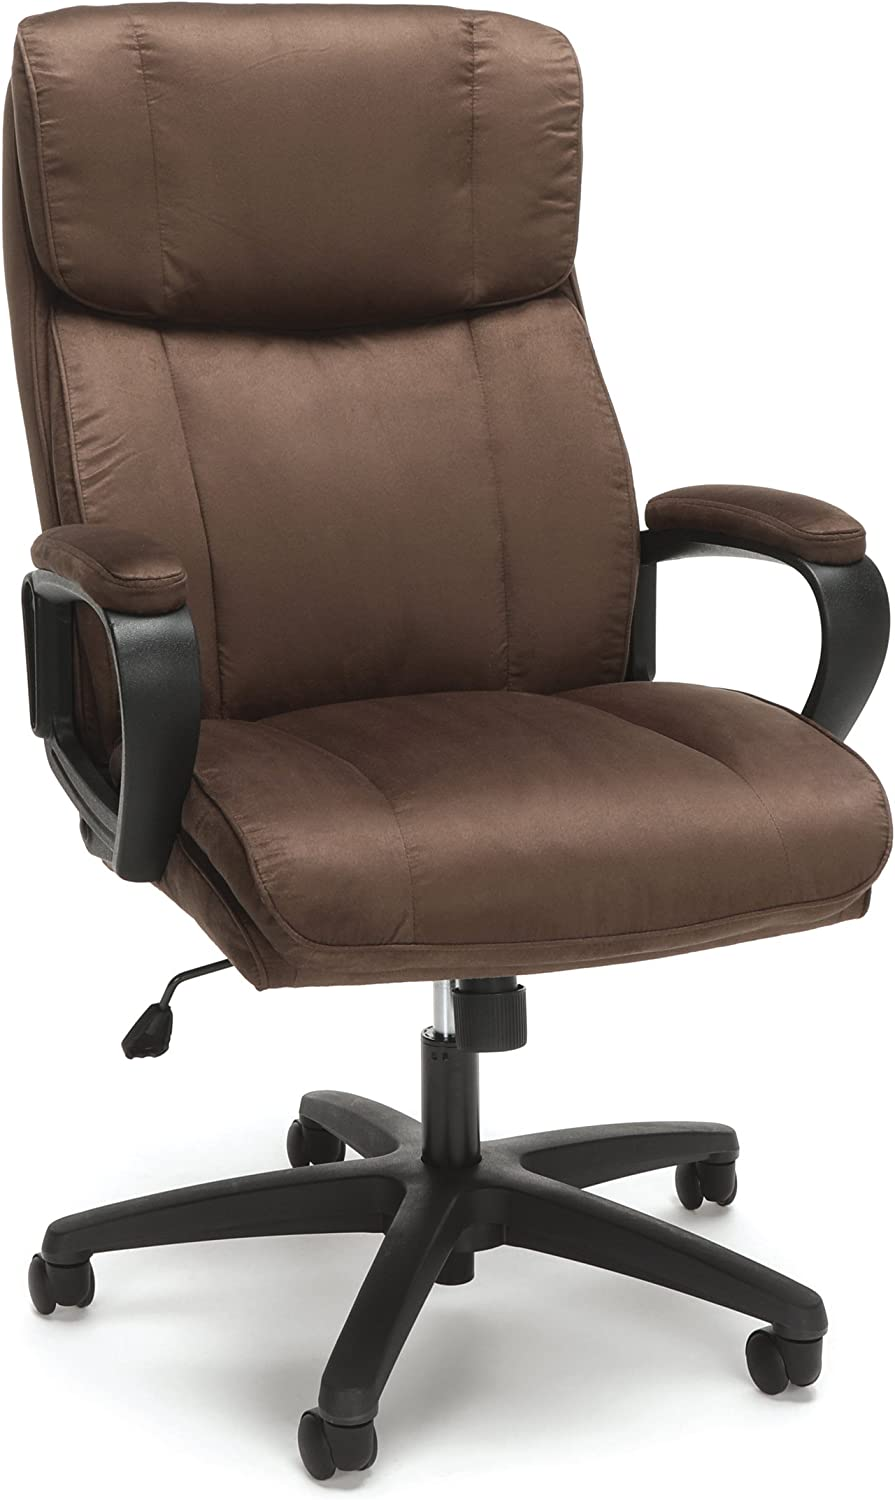 Essentials Executive Chair - High Back Office Computer Chair